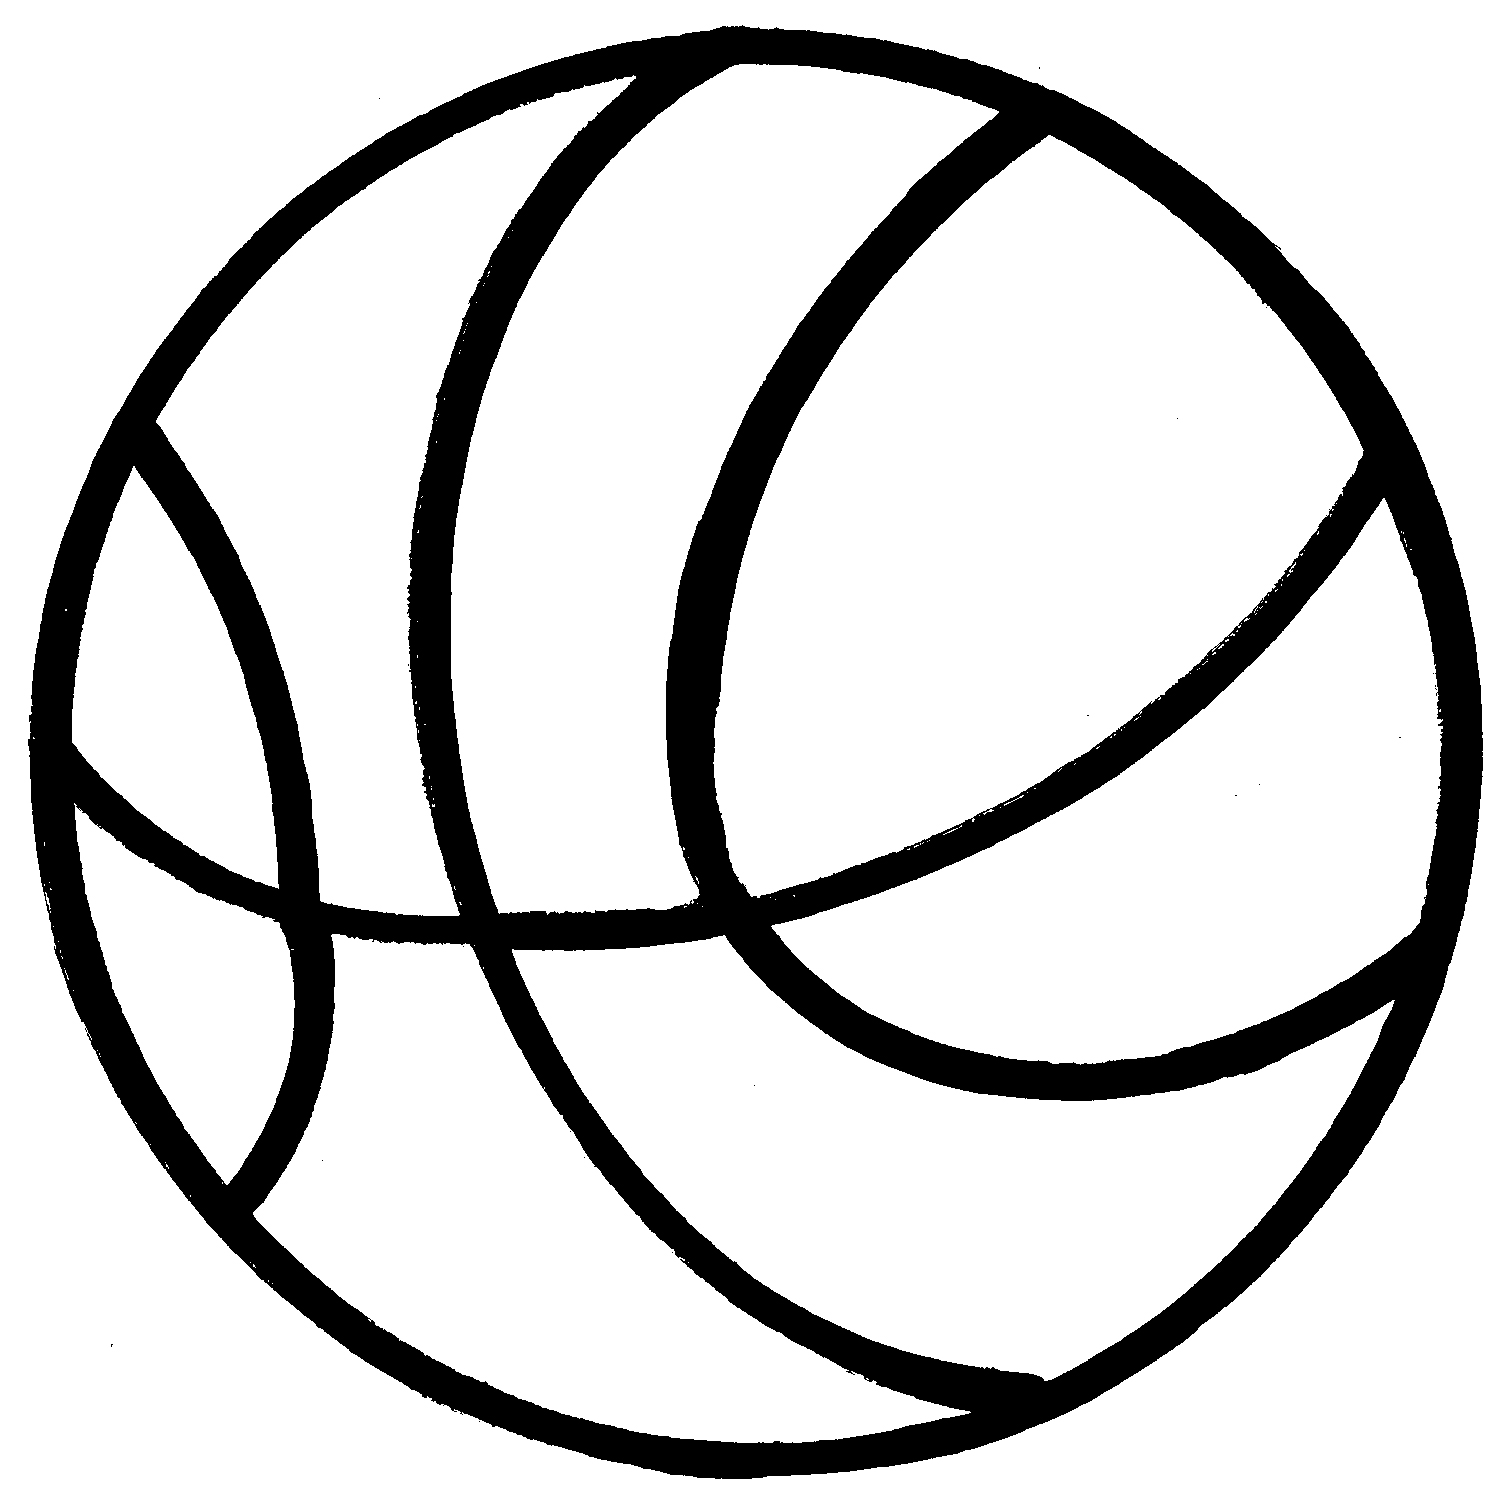 Basketball Clip Art Free Basketball Clipart To Use For